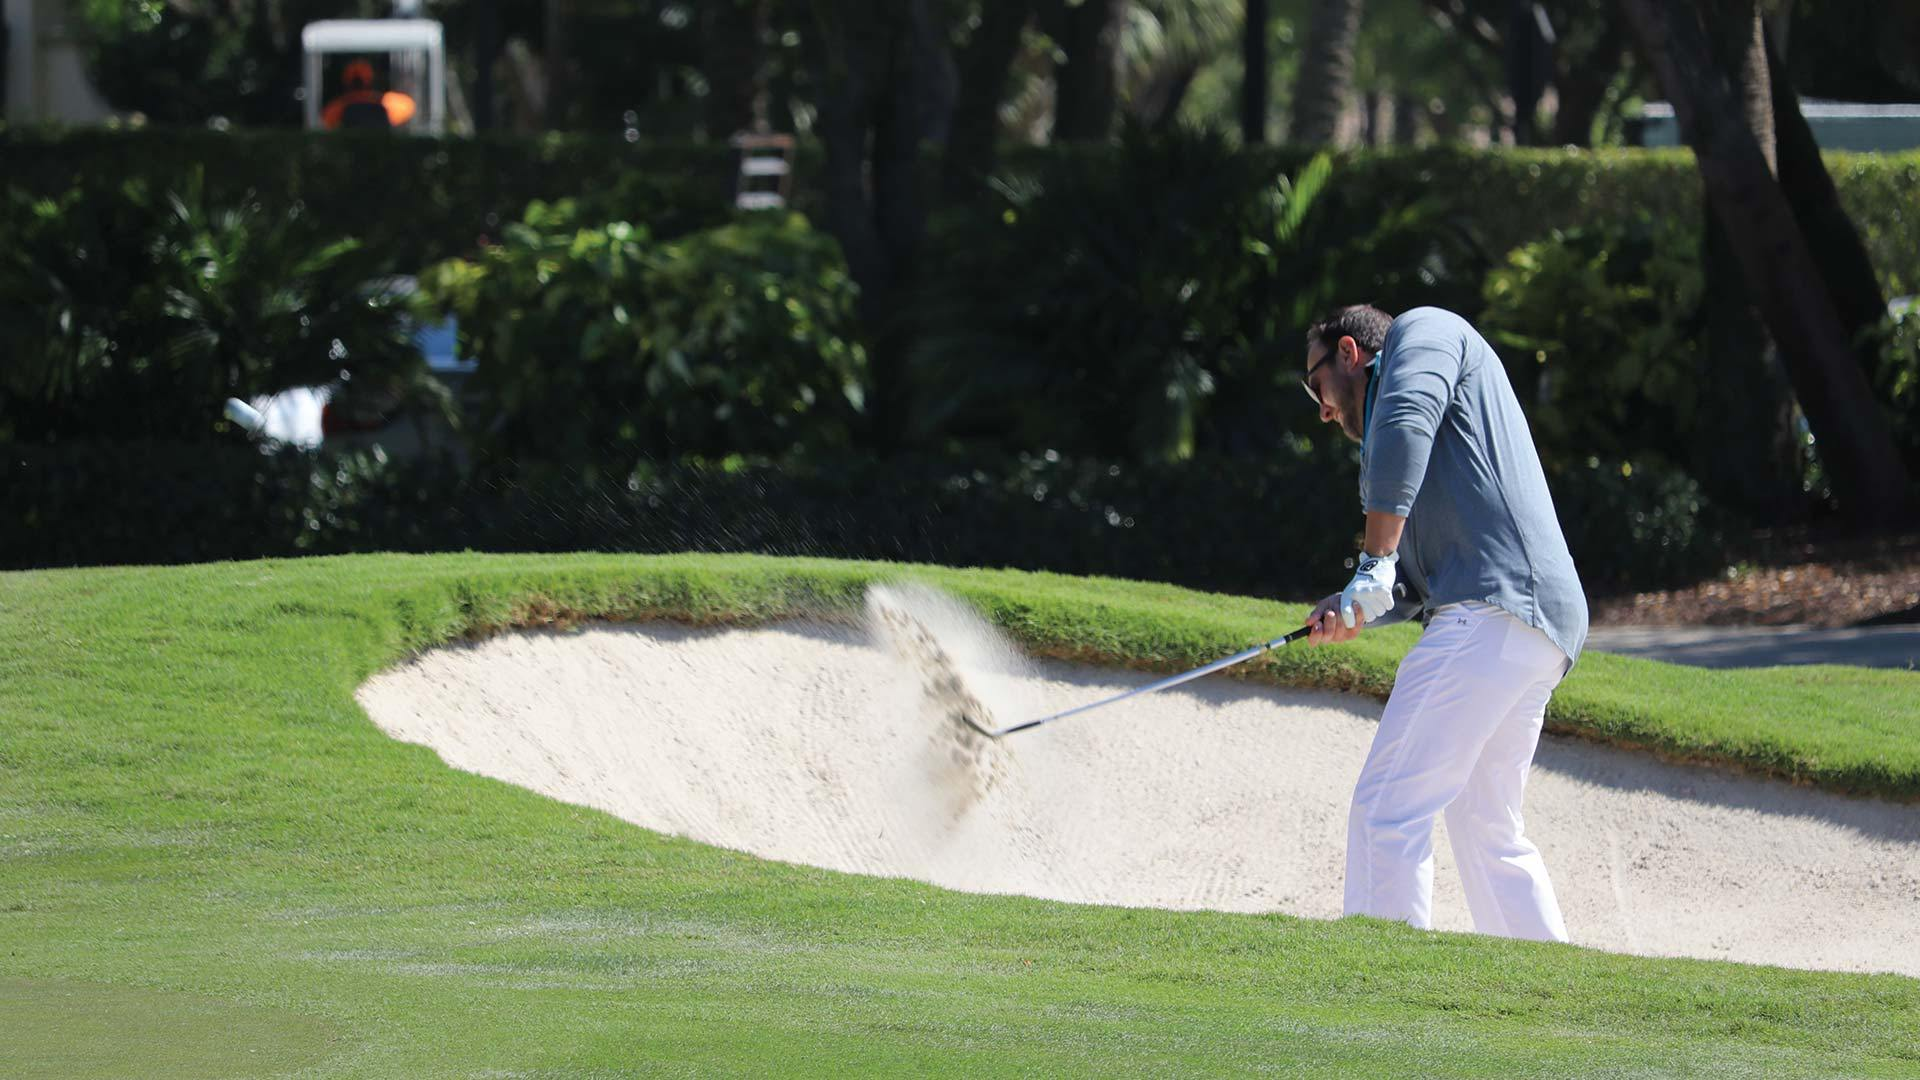 mizner-country-club-delray-beach-golf-images-19